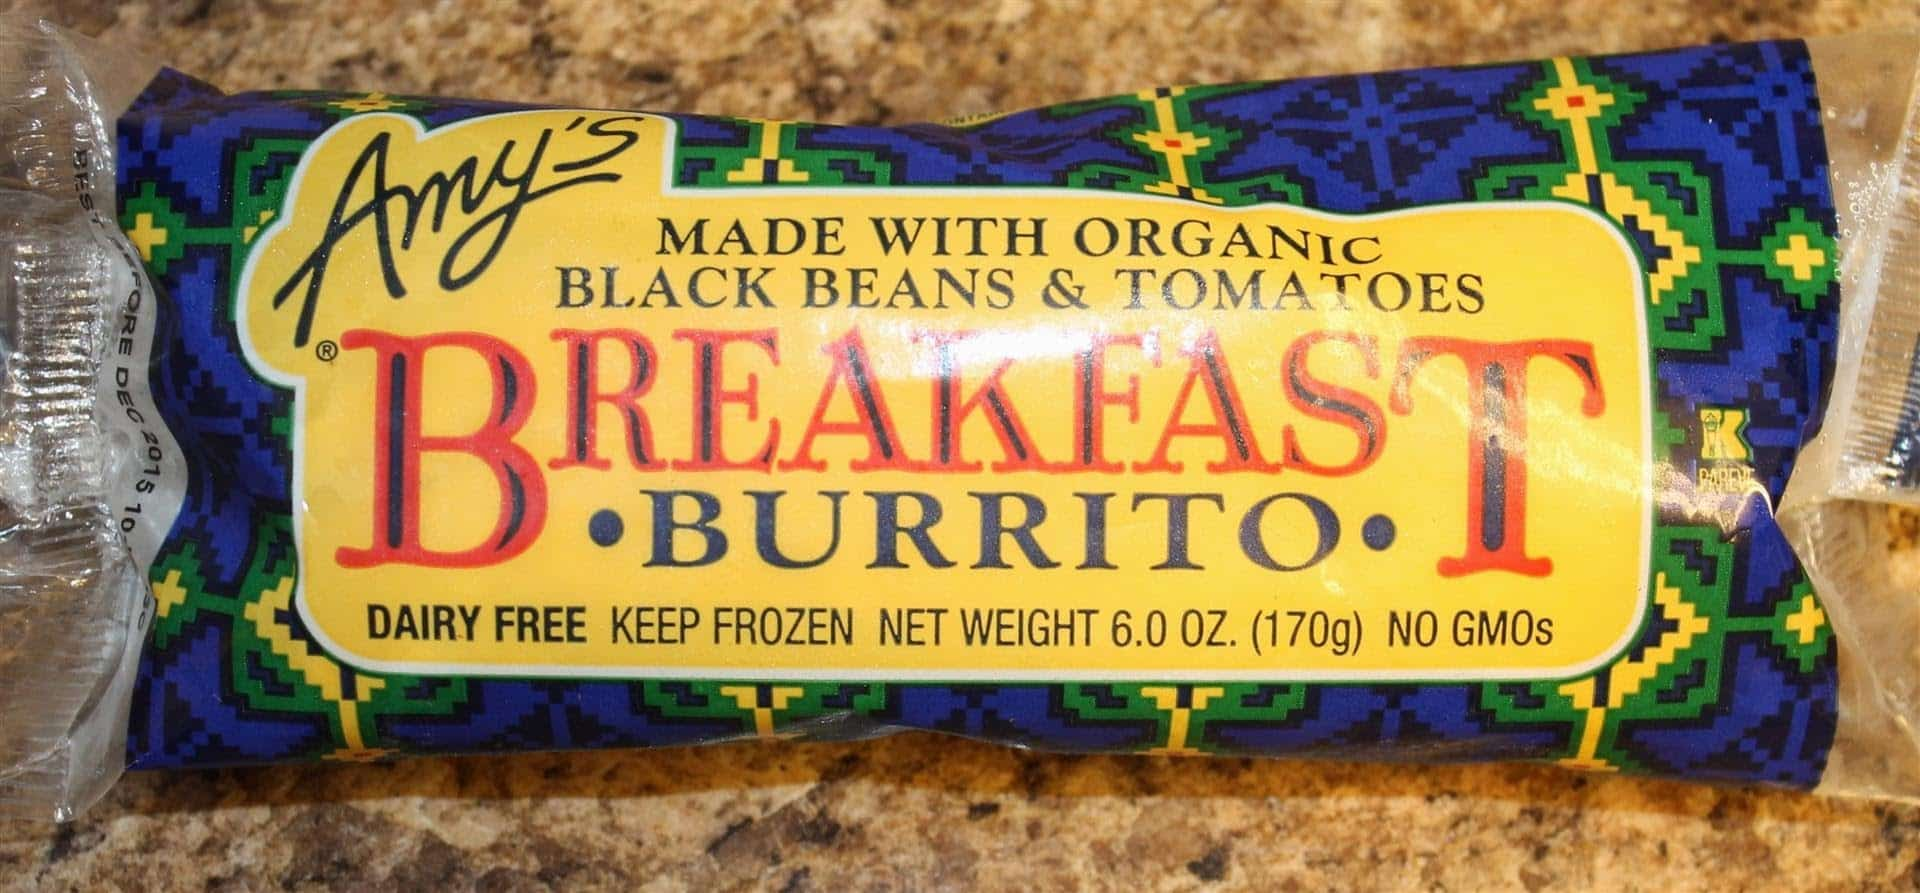 Amy's Breakfast Burrito Health Frozen Foods